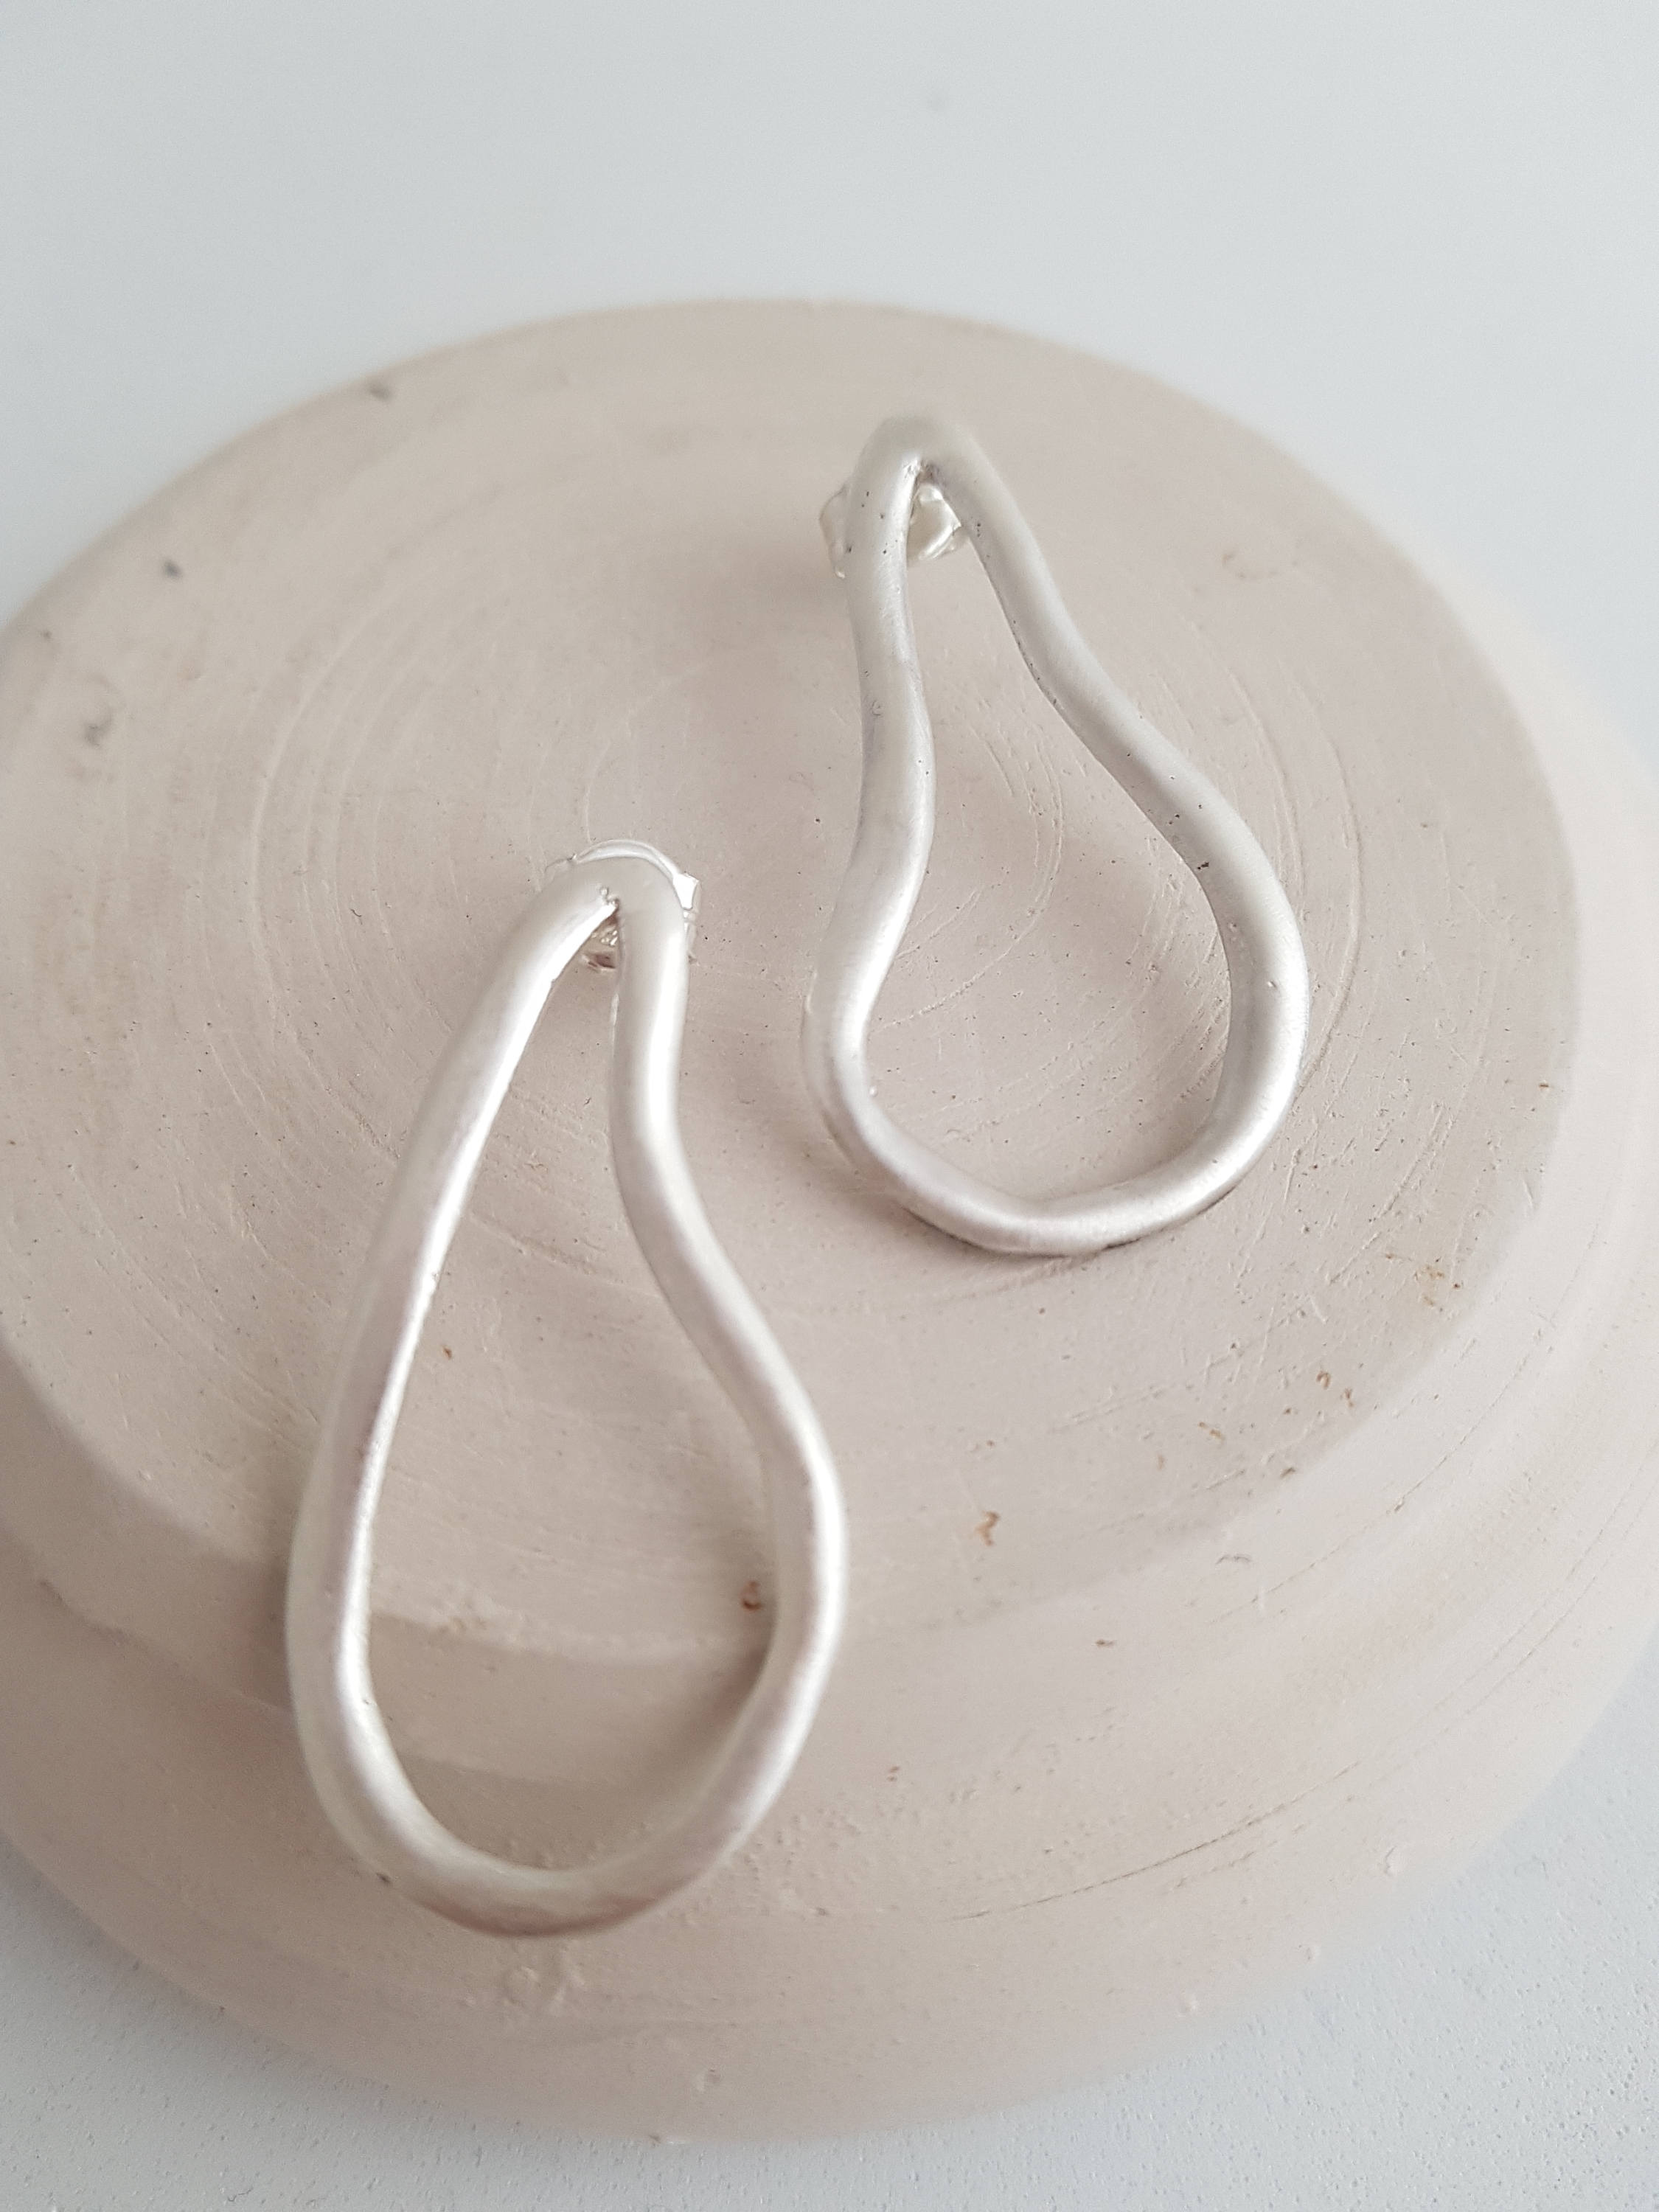 Statement cable earrings in sterling silver. Big bohemian and artistic earrings with a sinuous form.